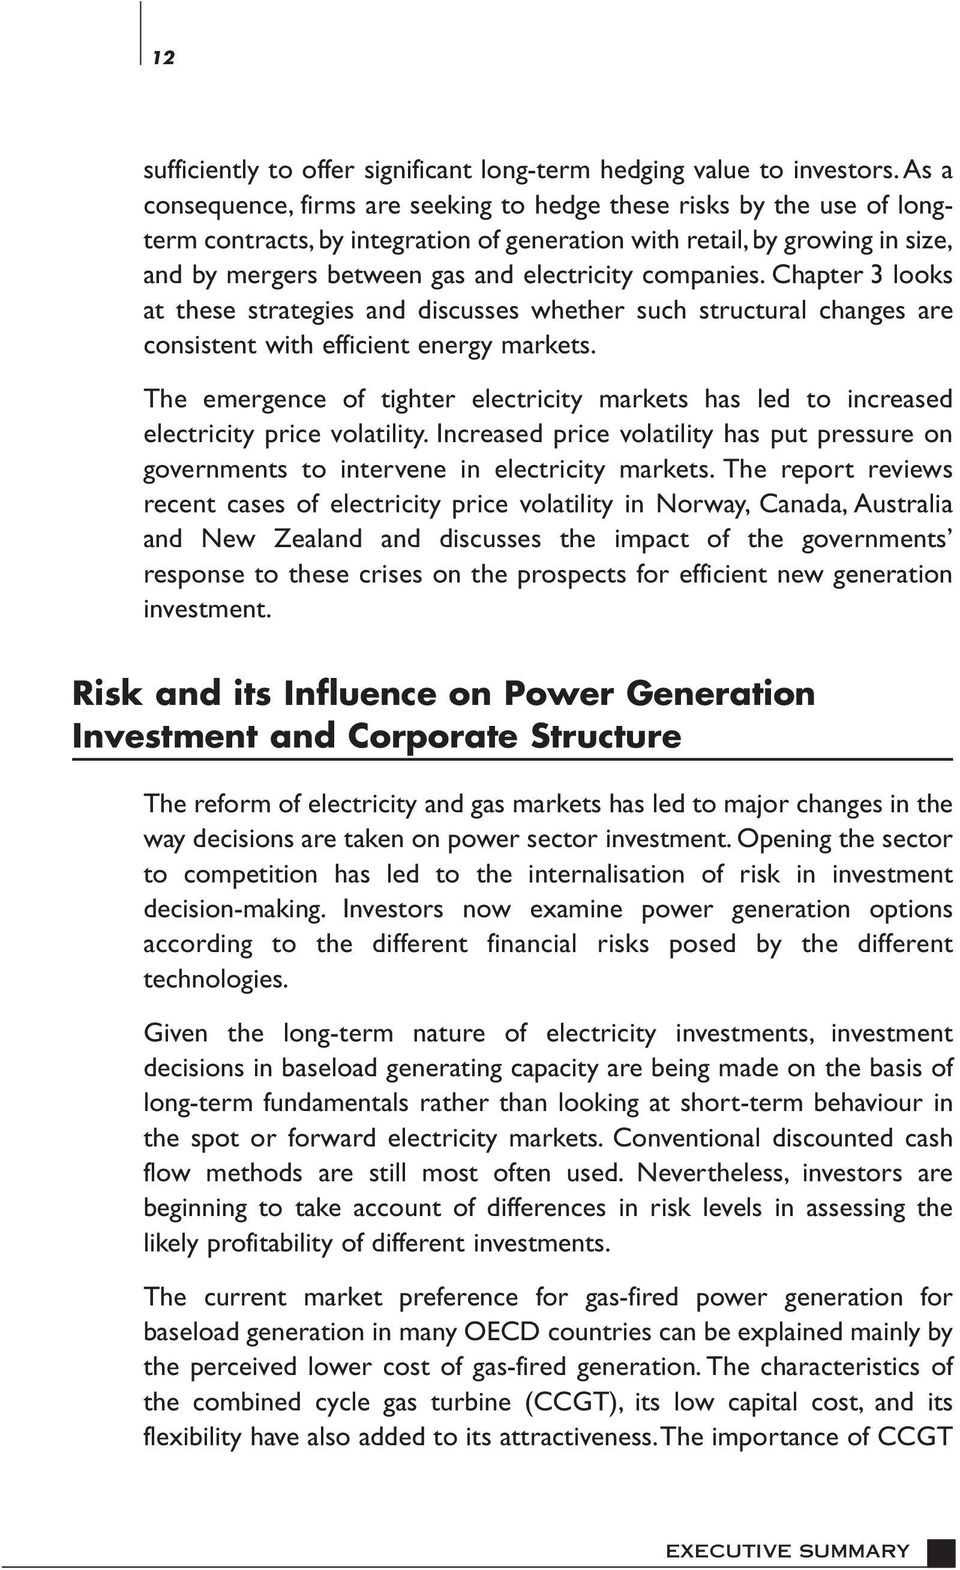 companies. Chapter 3 looks at these strategies and discusses whether such structural changes are consistent with efficient energy markets.